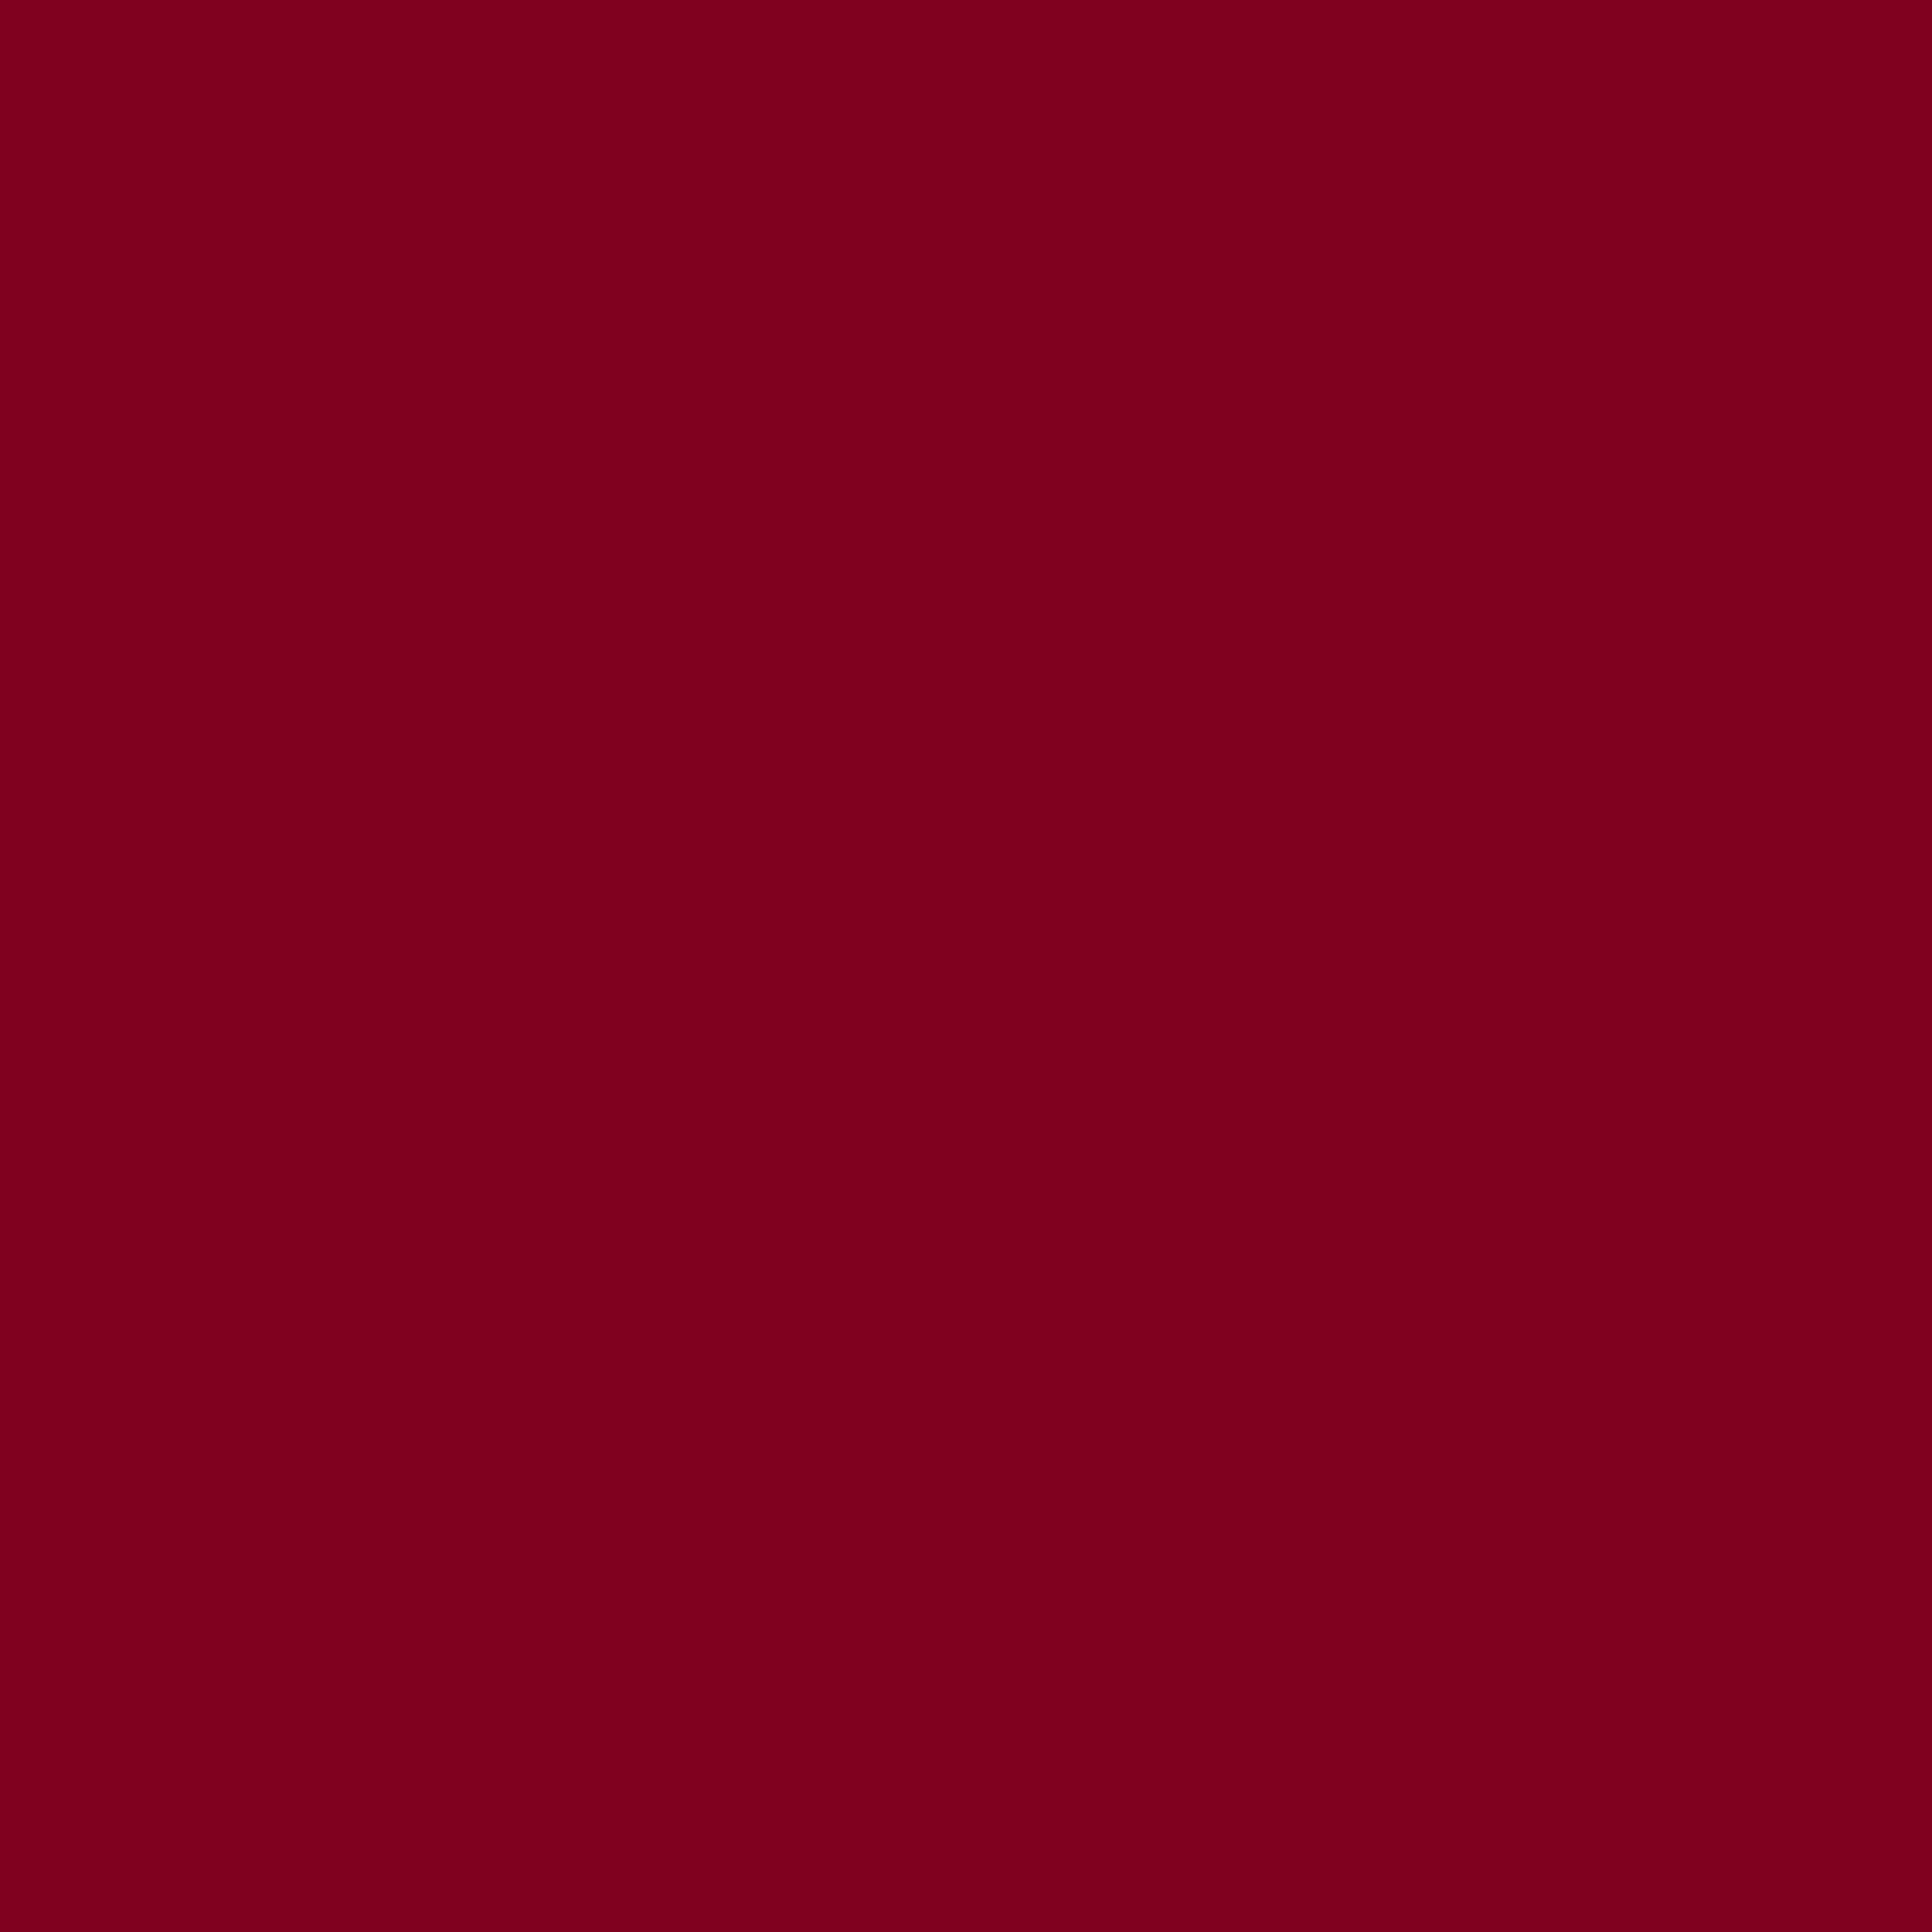 3600x3600 Burgundy Solid Color Background